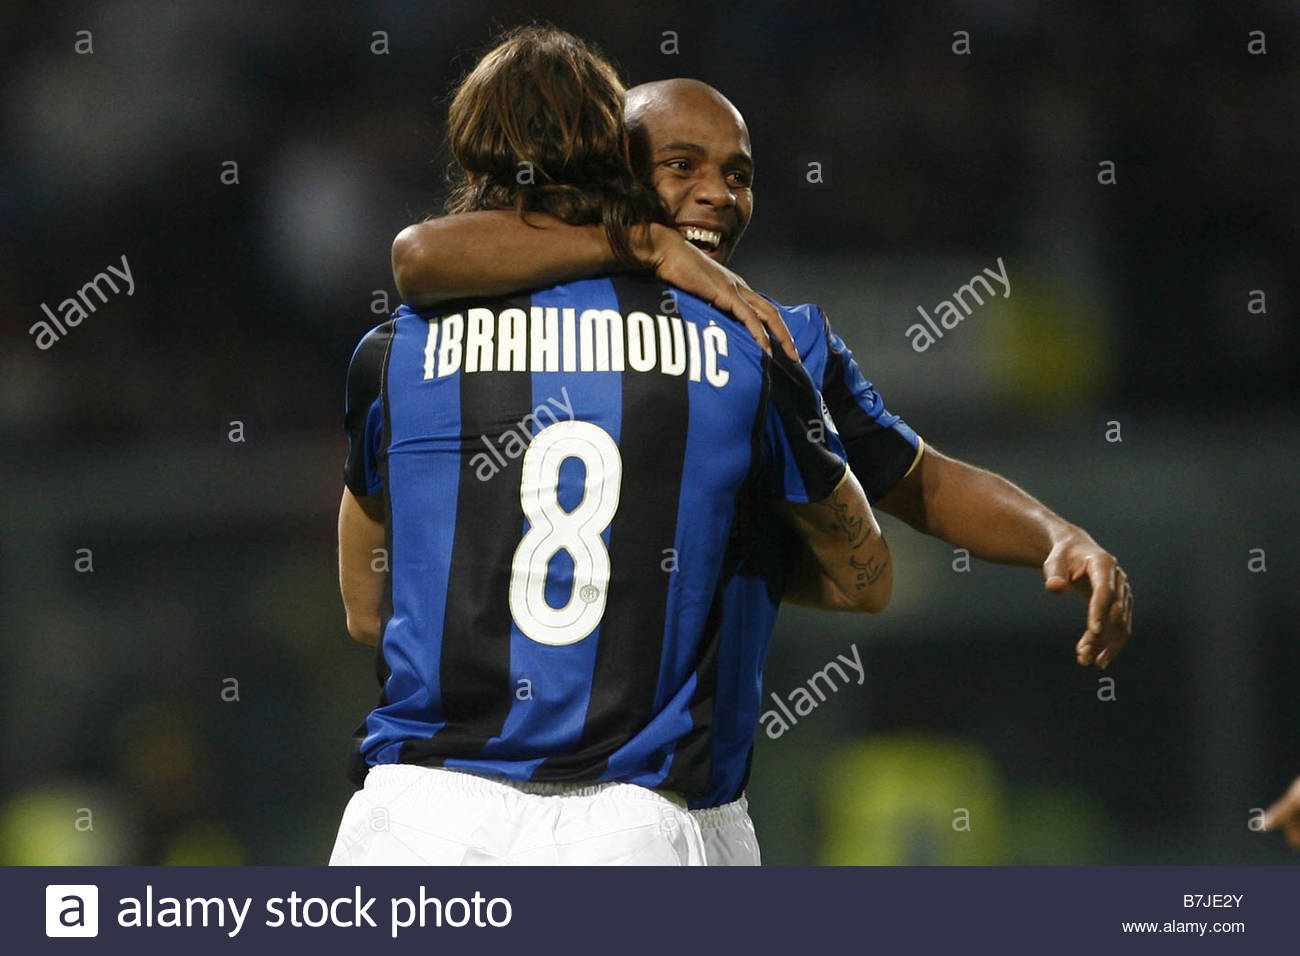 zlatan ibrahimovic and maicon'palermo 15-11-2008 'serie a football championship 2008/2009 'palermo-inter 0-2'photo - Stock Image